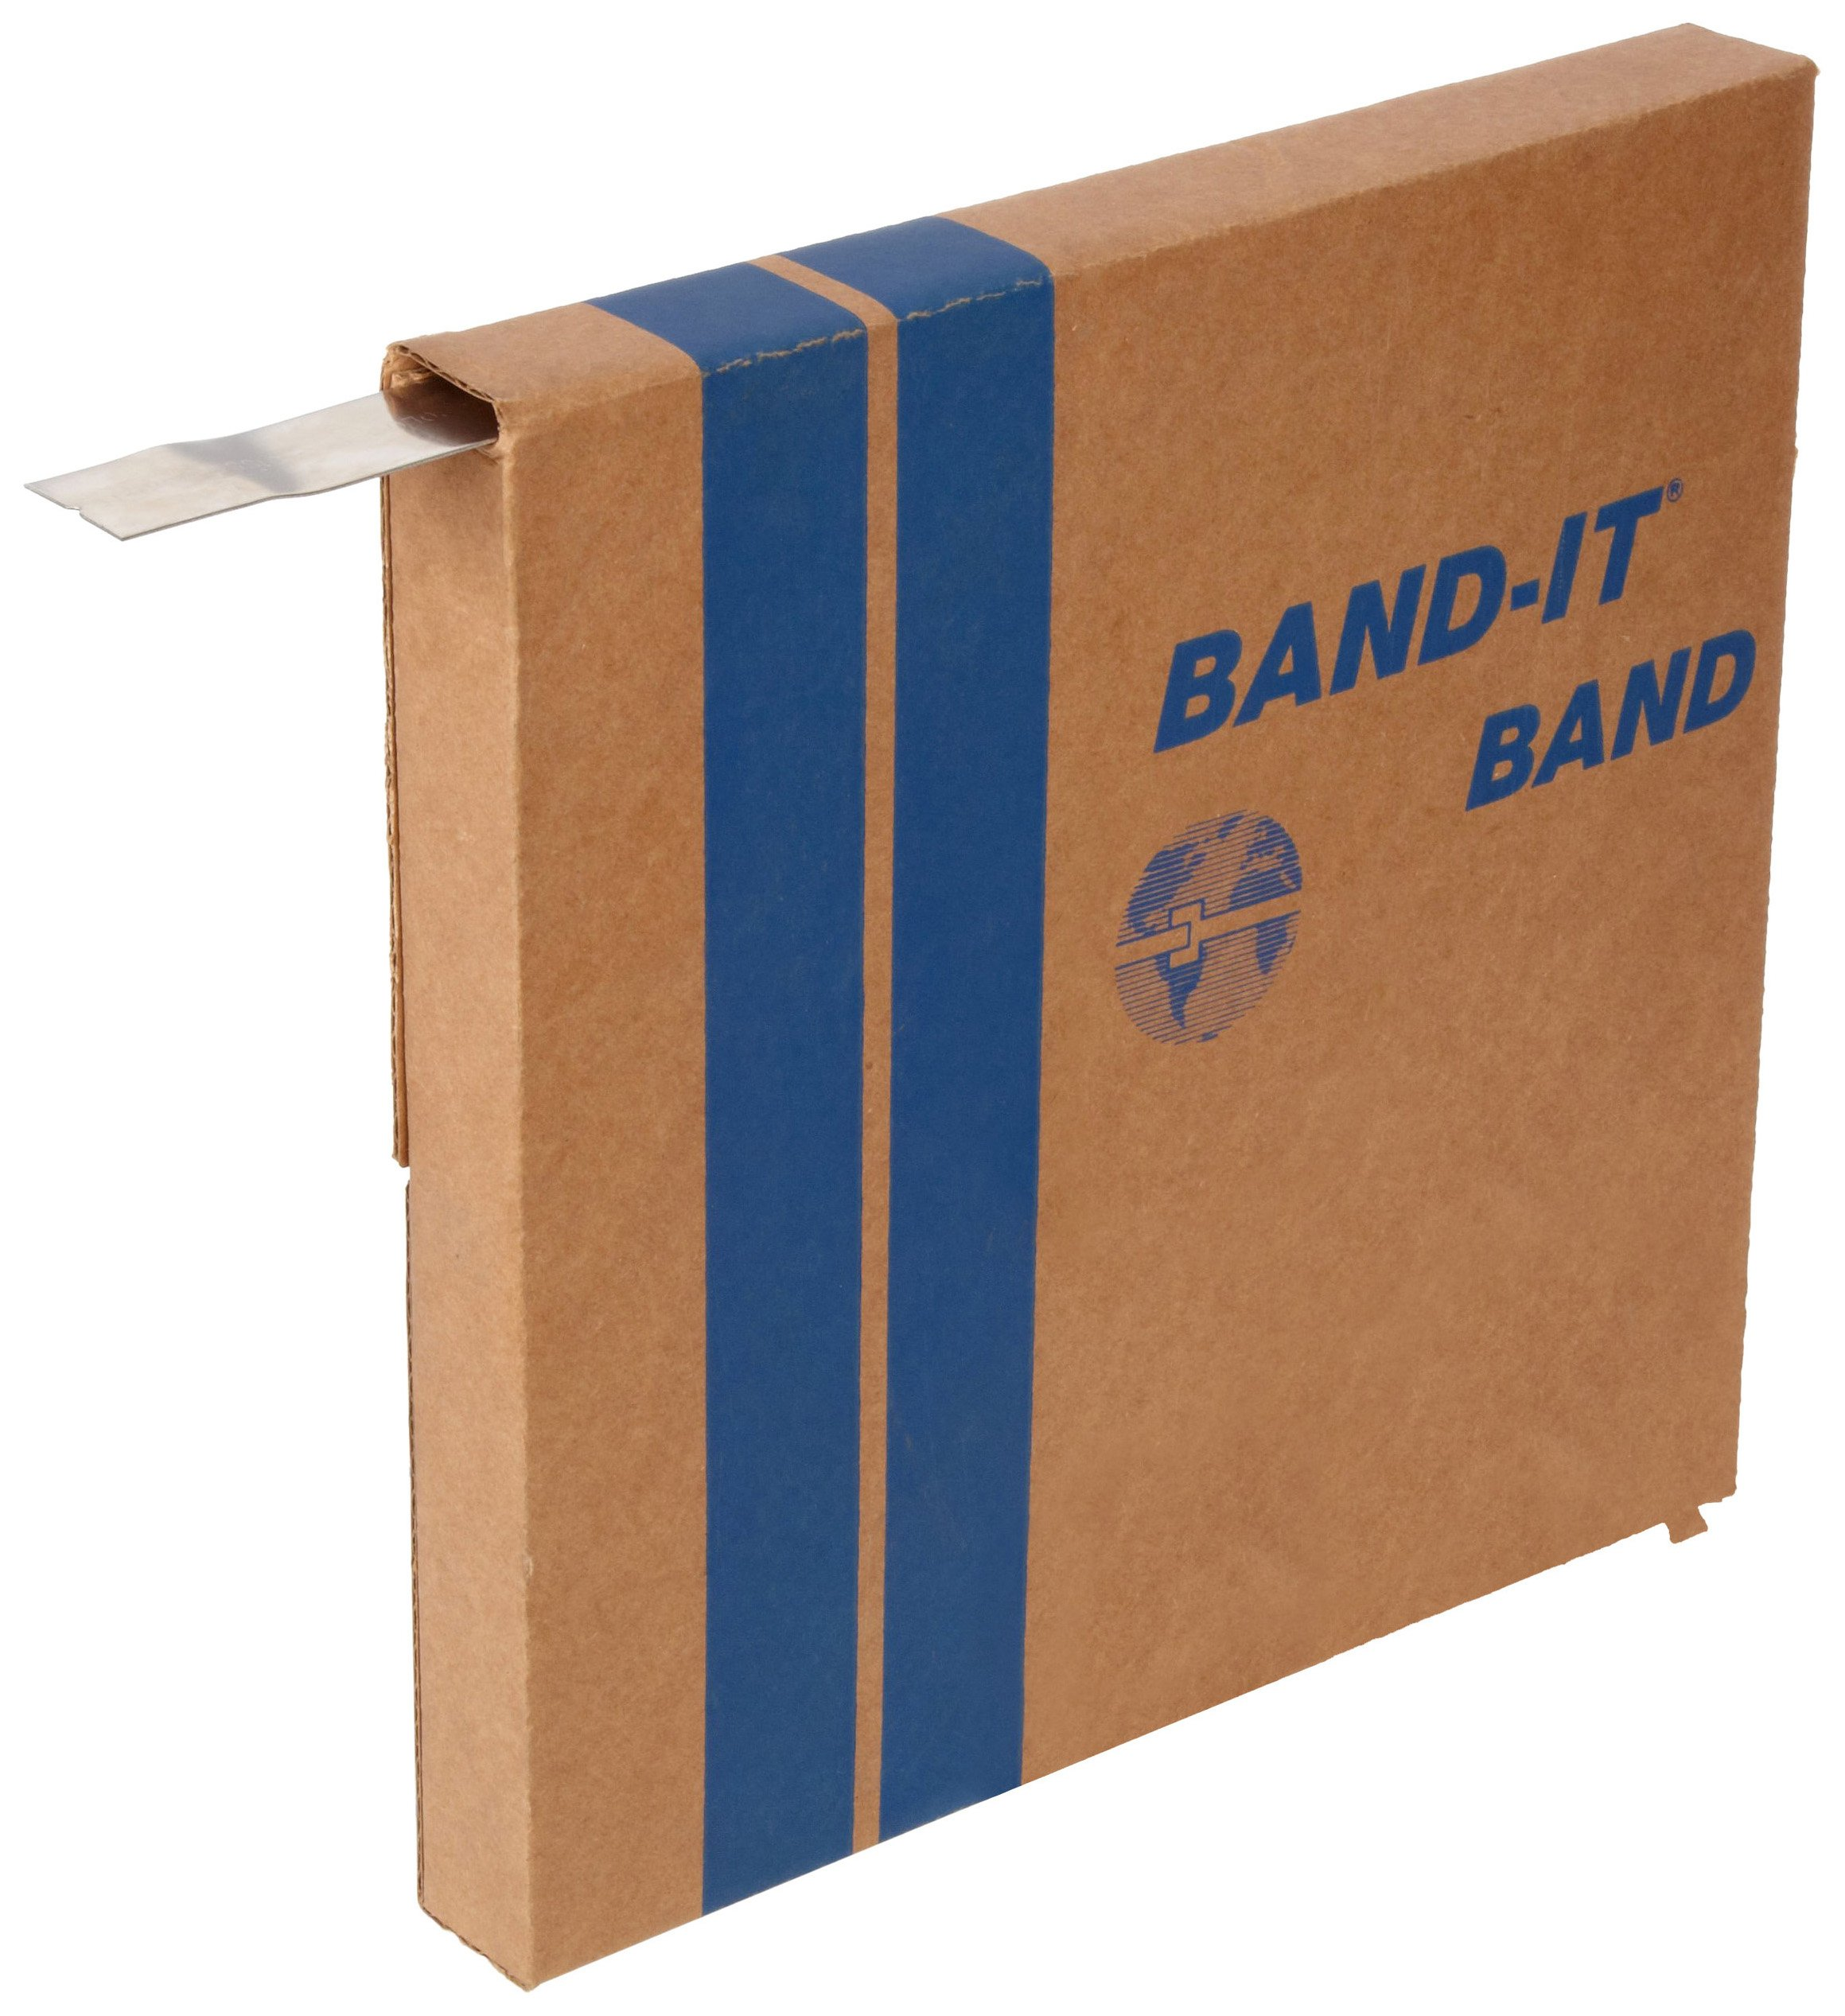 BAND-IT C20299 201 Stainless Steel Bright Annealed Finish Band, 1/4'' Width X 0.020'' Thick, 100 Feet Roll